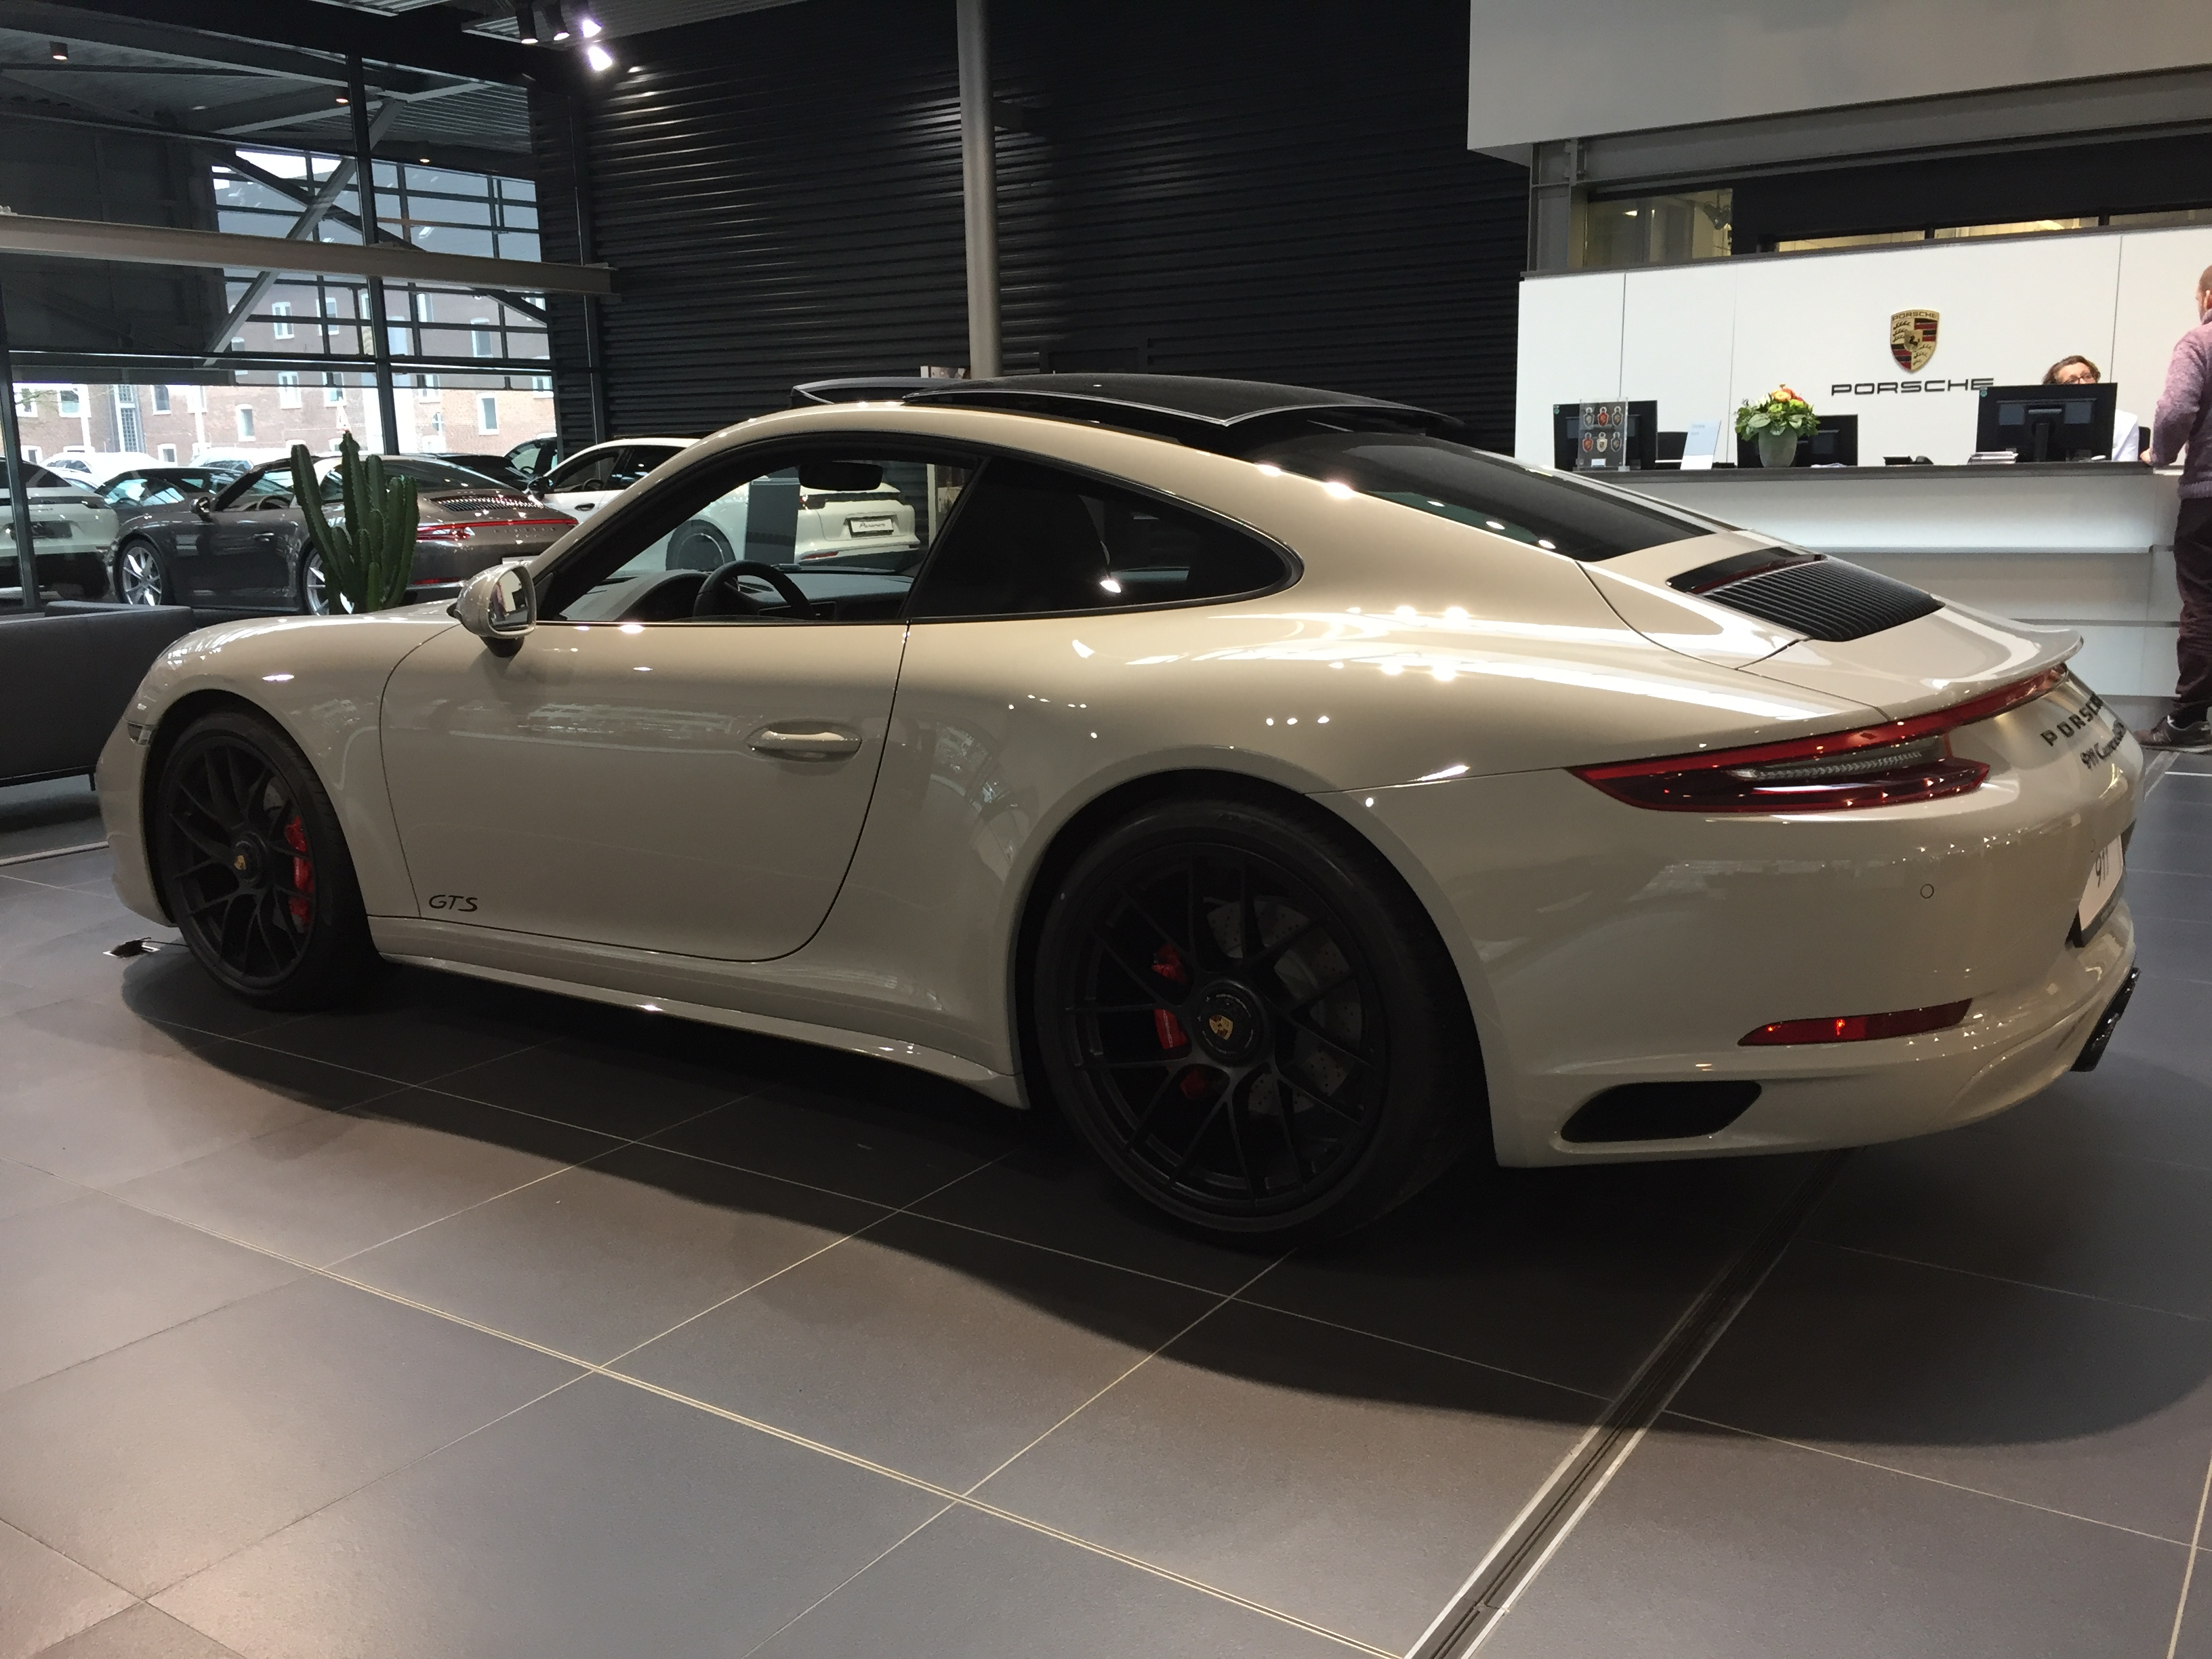 datei porsche 991 2 carrera4 gts coupe seite jpg wikipedia. Black Bedroom Furniture Sets. Home Design Ideas